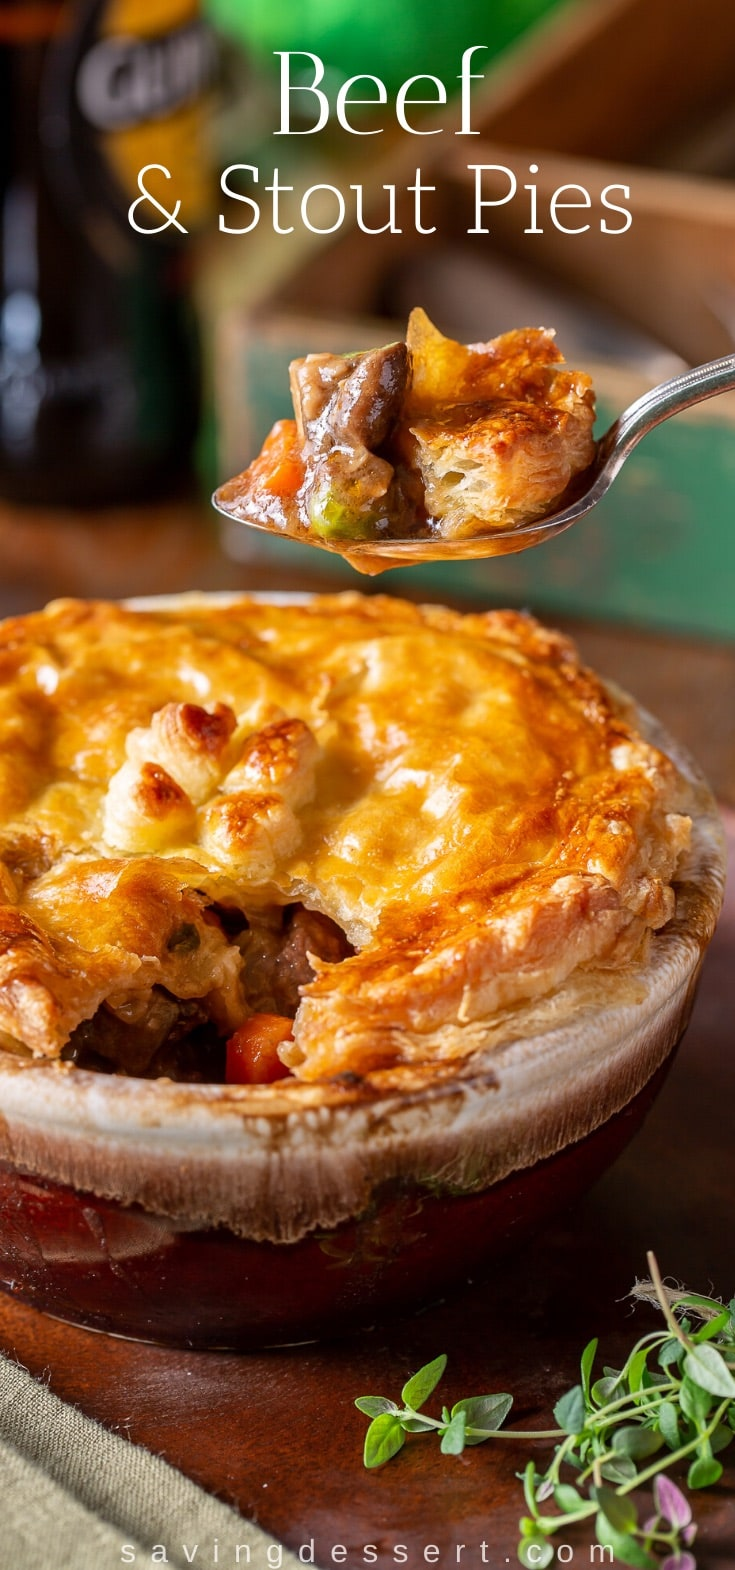 A bowl of Irish beef and stout pies baked in a bowl with golden brown puff pastry on top